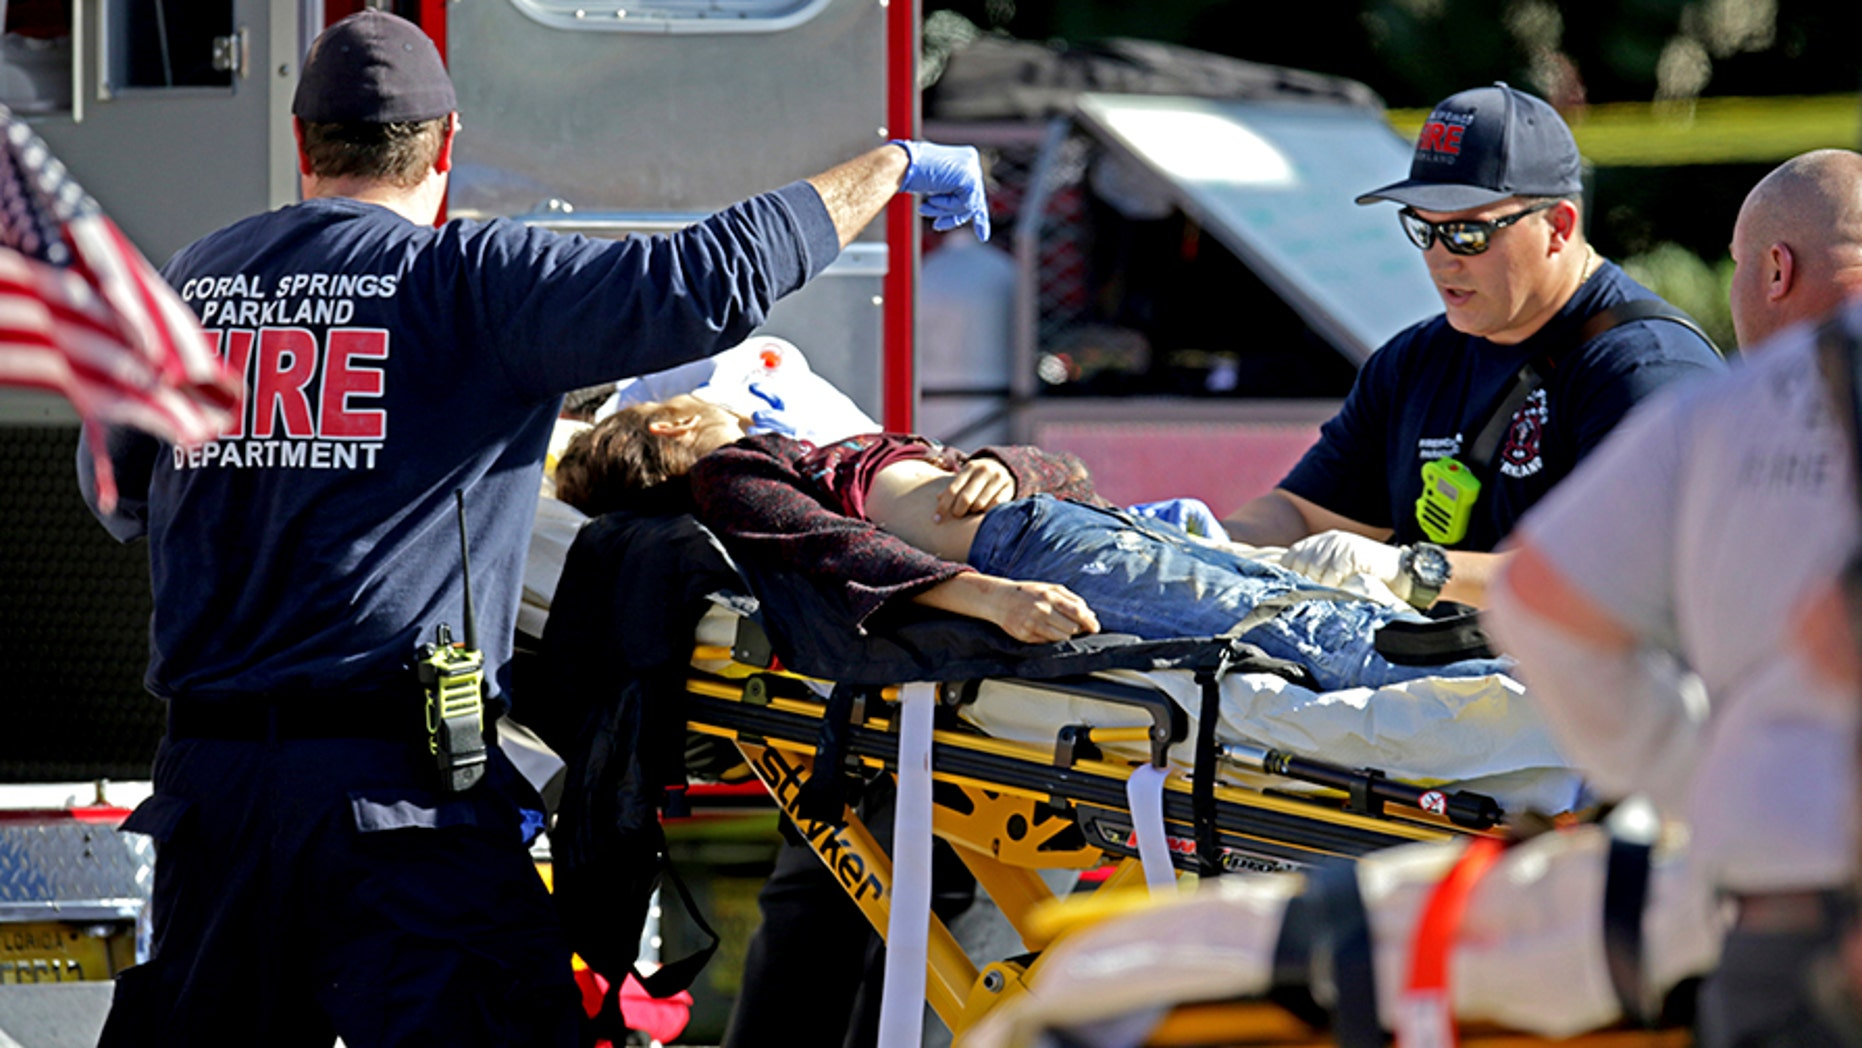 Medical personnel tend to victim following a shooting at Marjory Stoneman Douglas School in Parkland, Florida.